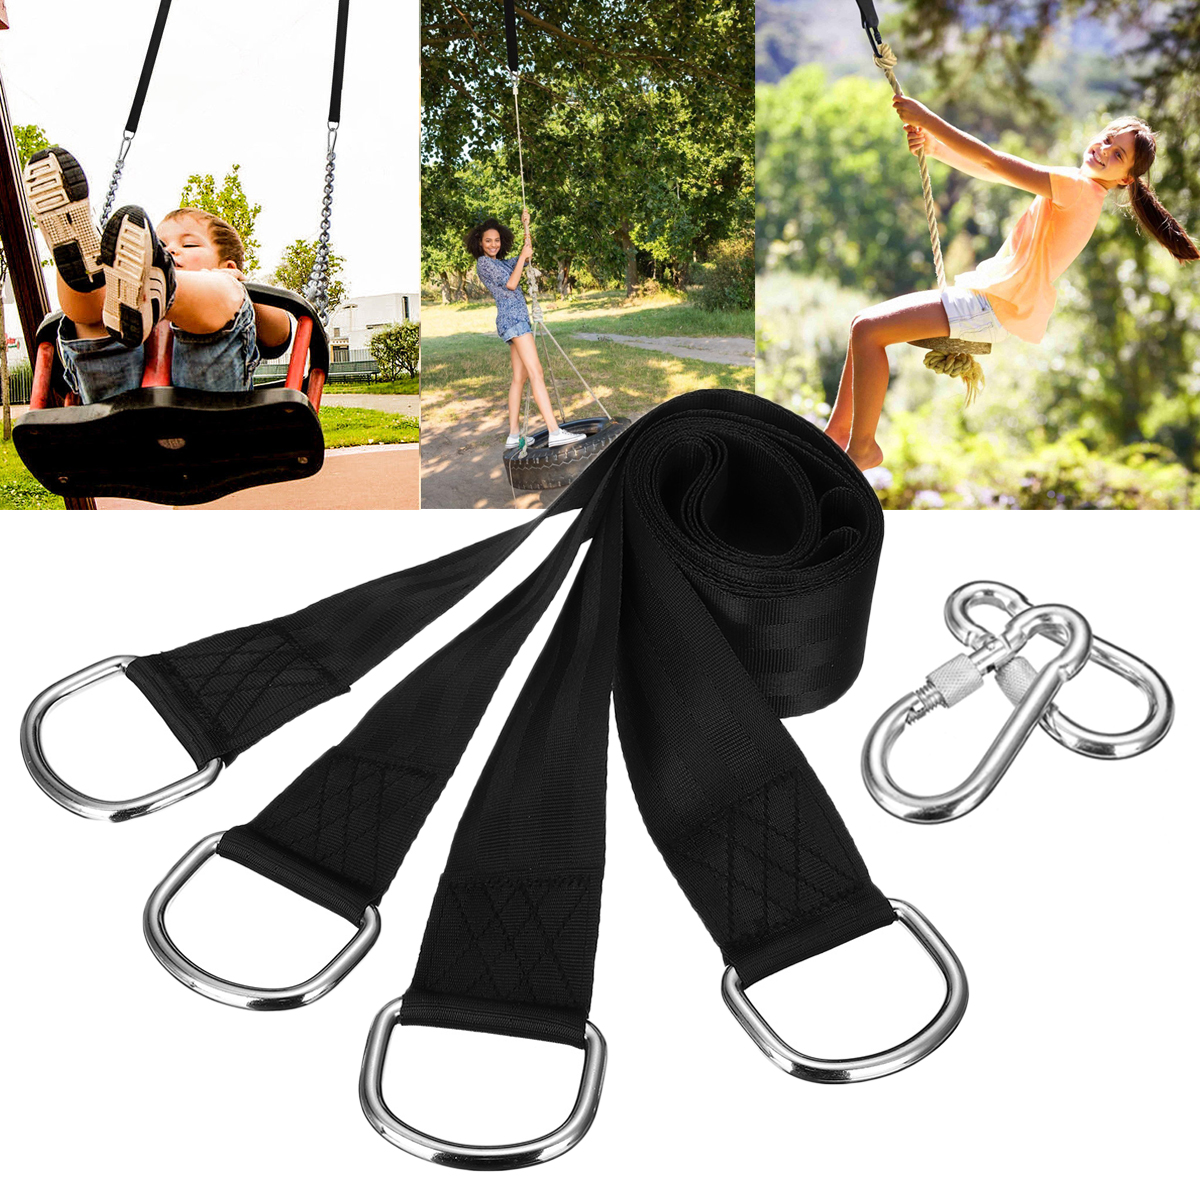 150cm Tree Swing Straps Set Tree Hanging Hammock Rope Straps Kit with Carabiner Hook